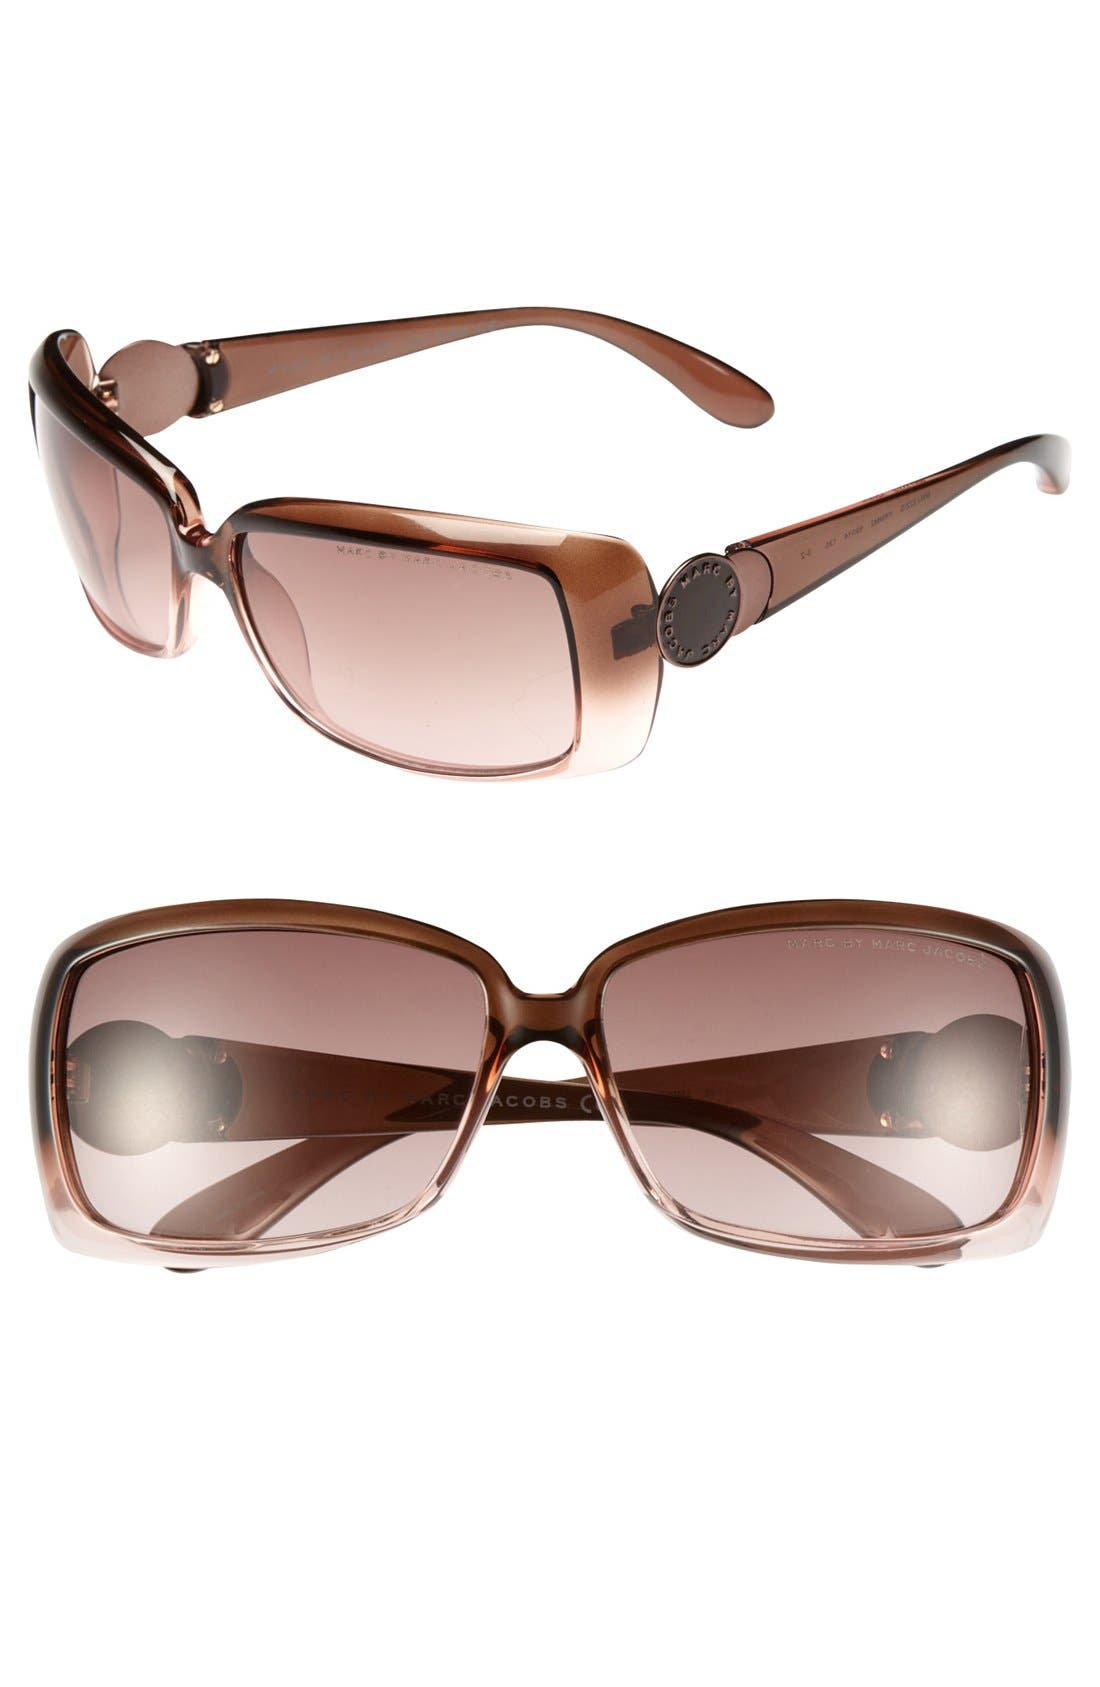 Main Image - MARC BY MARC JACOBS 59mm Rectangular Sunglasses